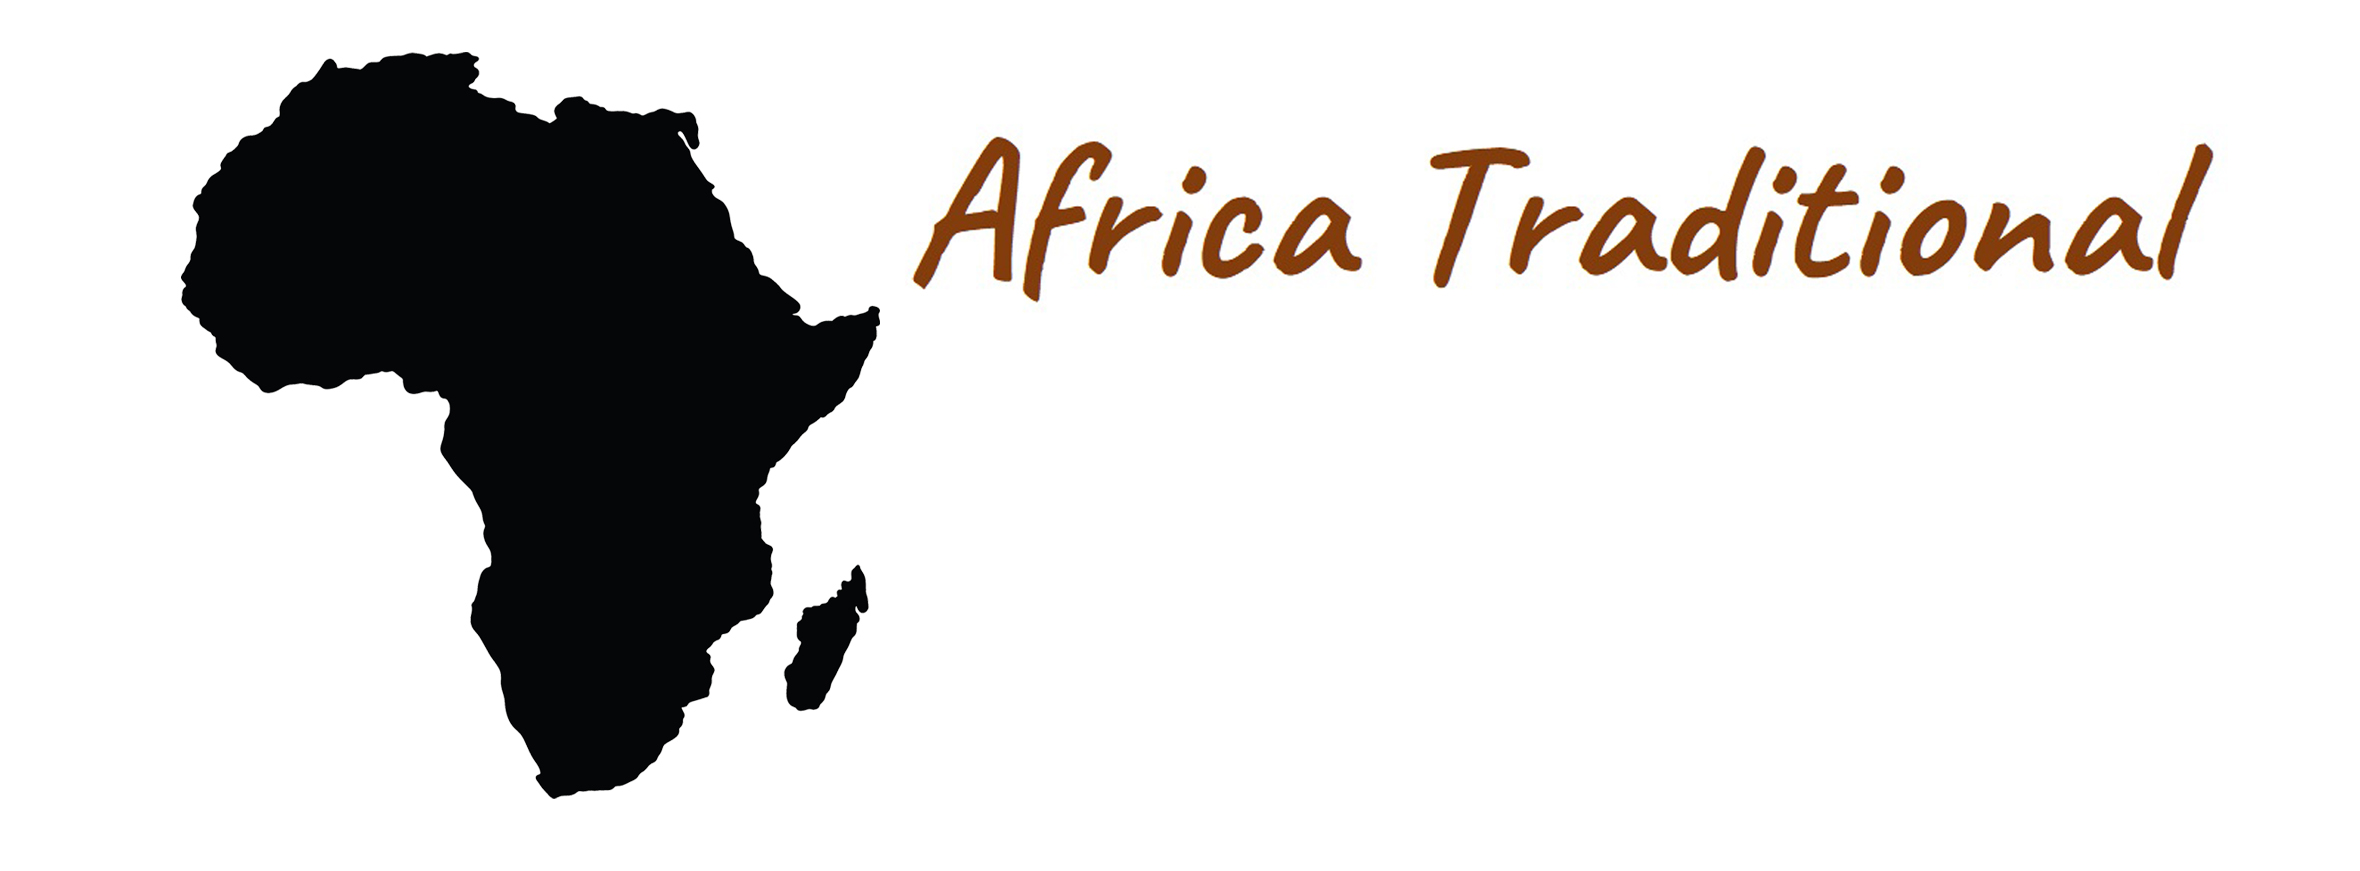 LOGO AFRICA TRADITiONAL DF